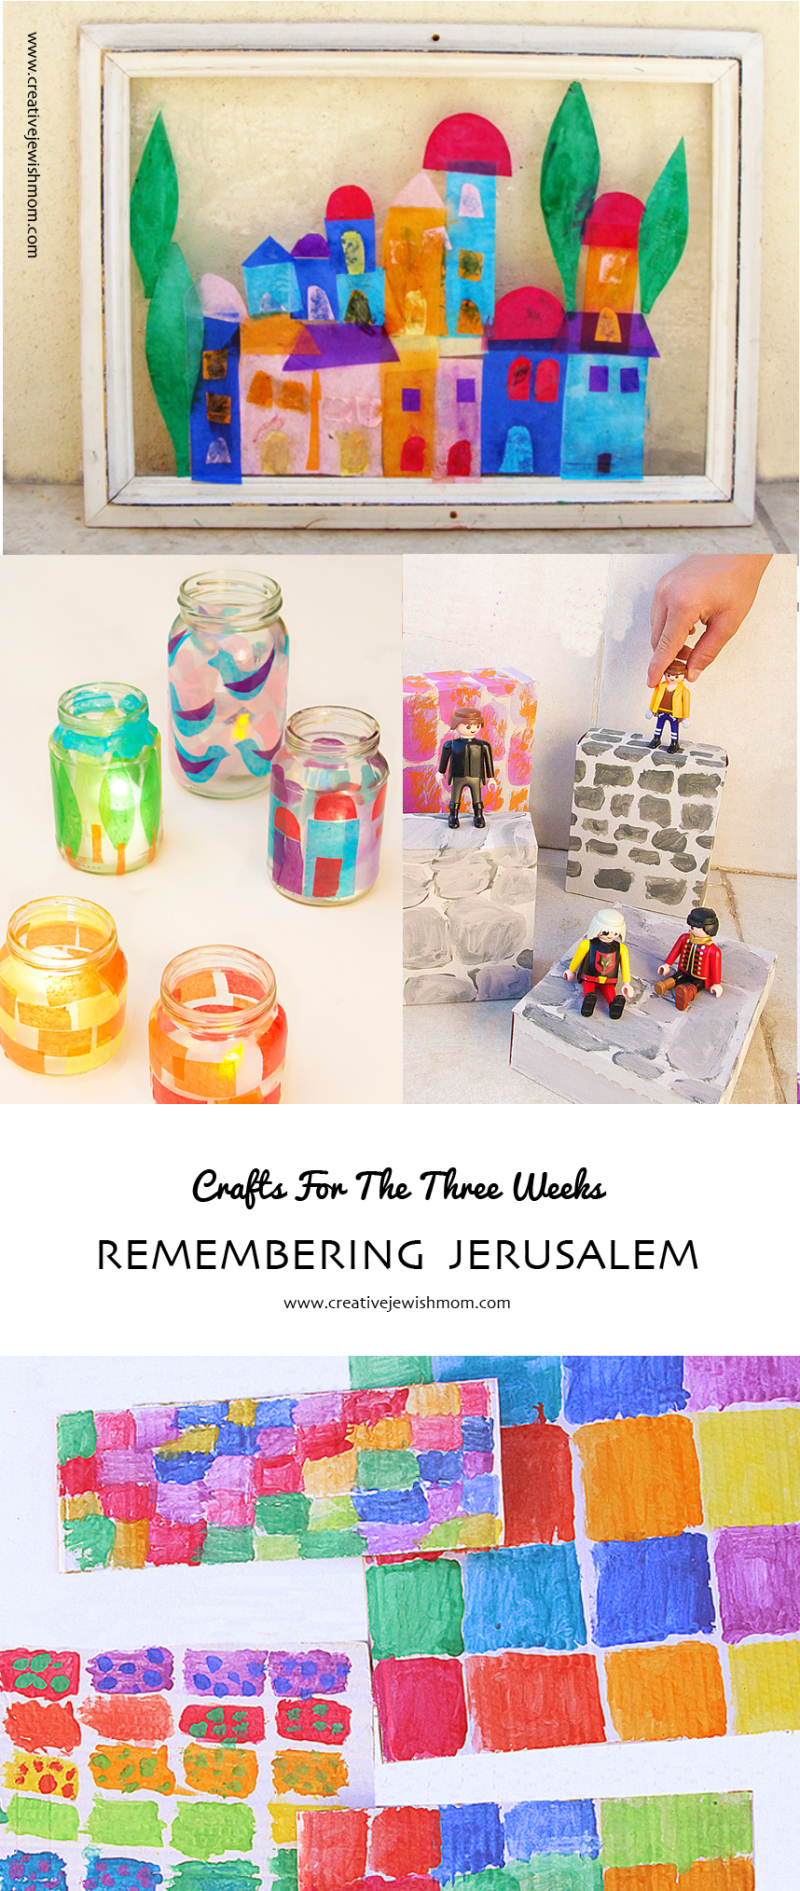 Remember Jerusalem Crafts Roundup